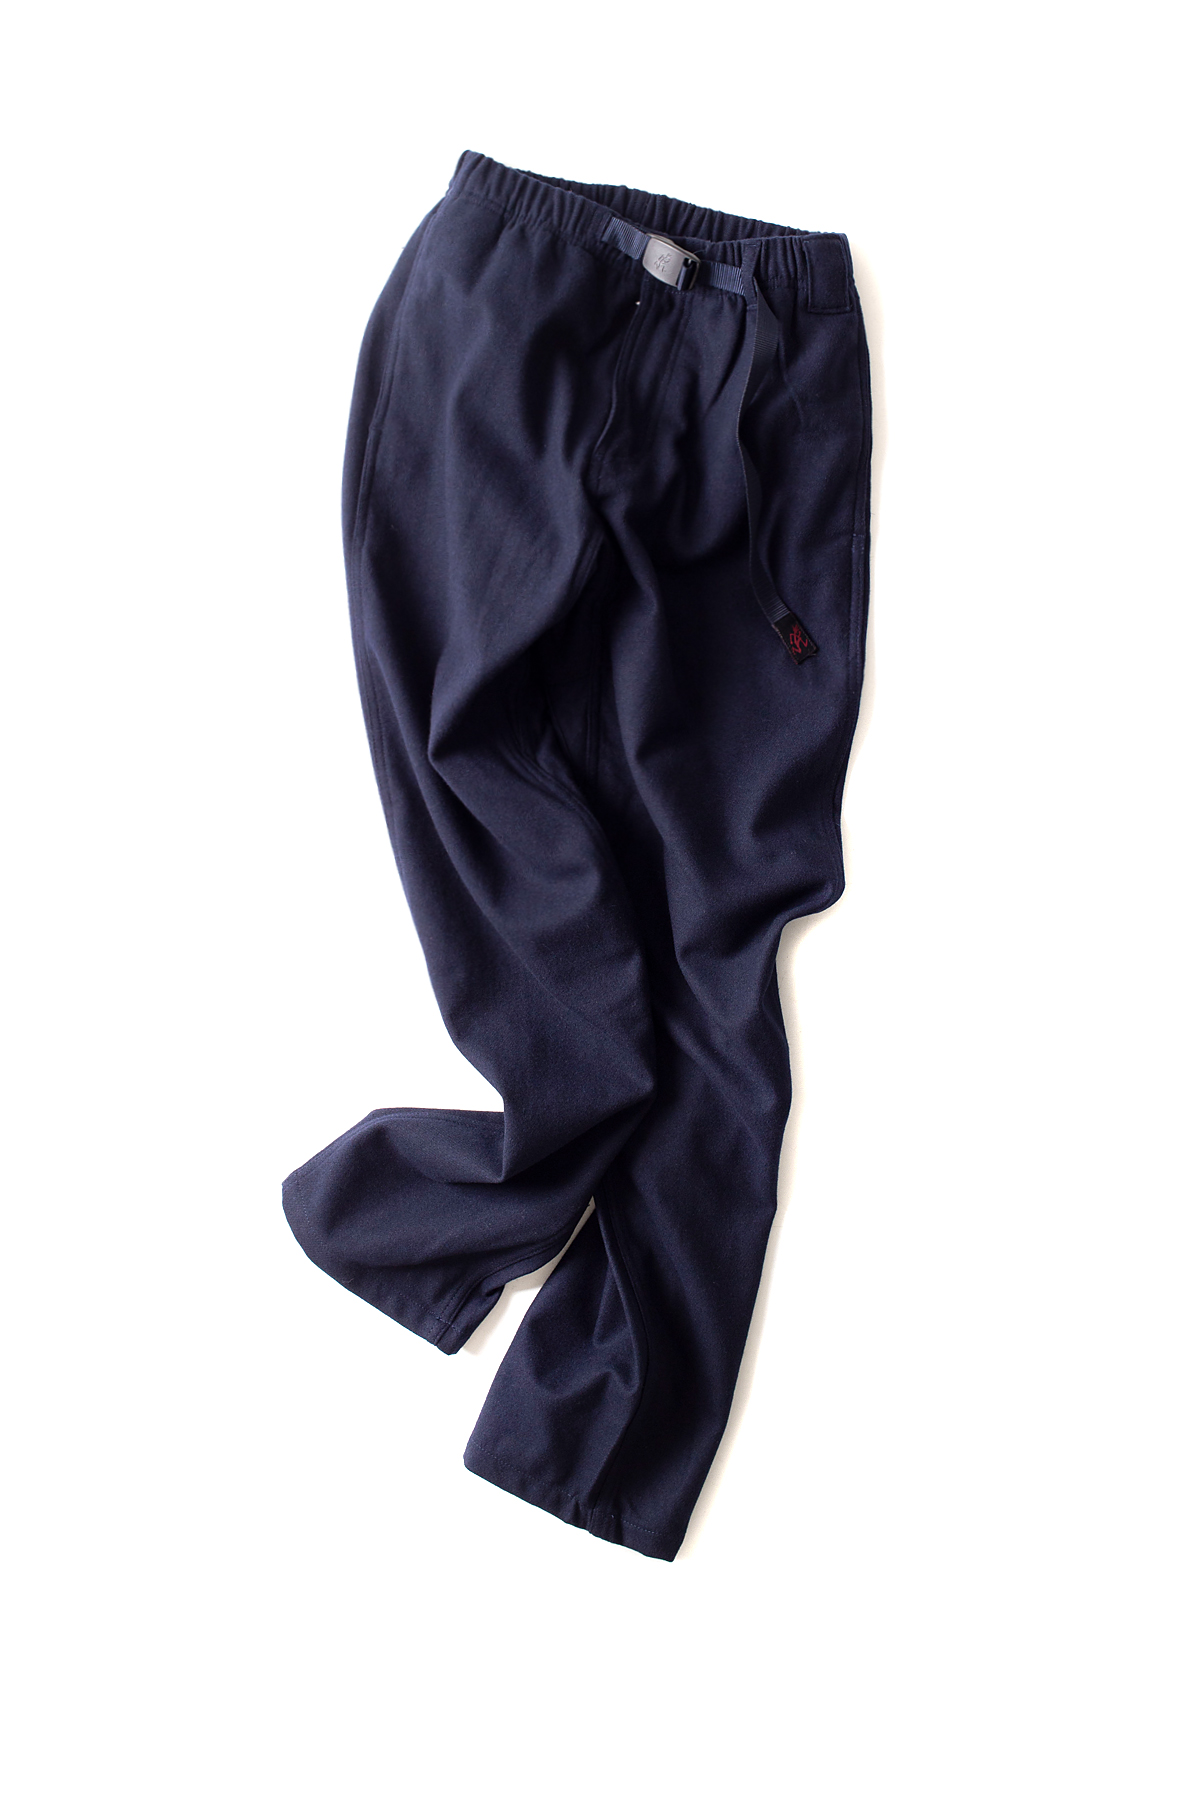 Gramicci : Wool Blend Gramicci Pants (Navy)